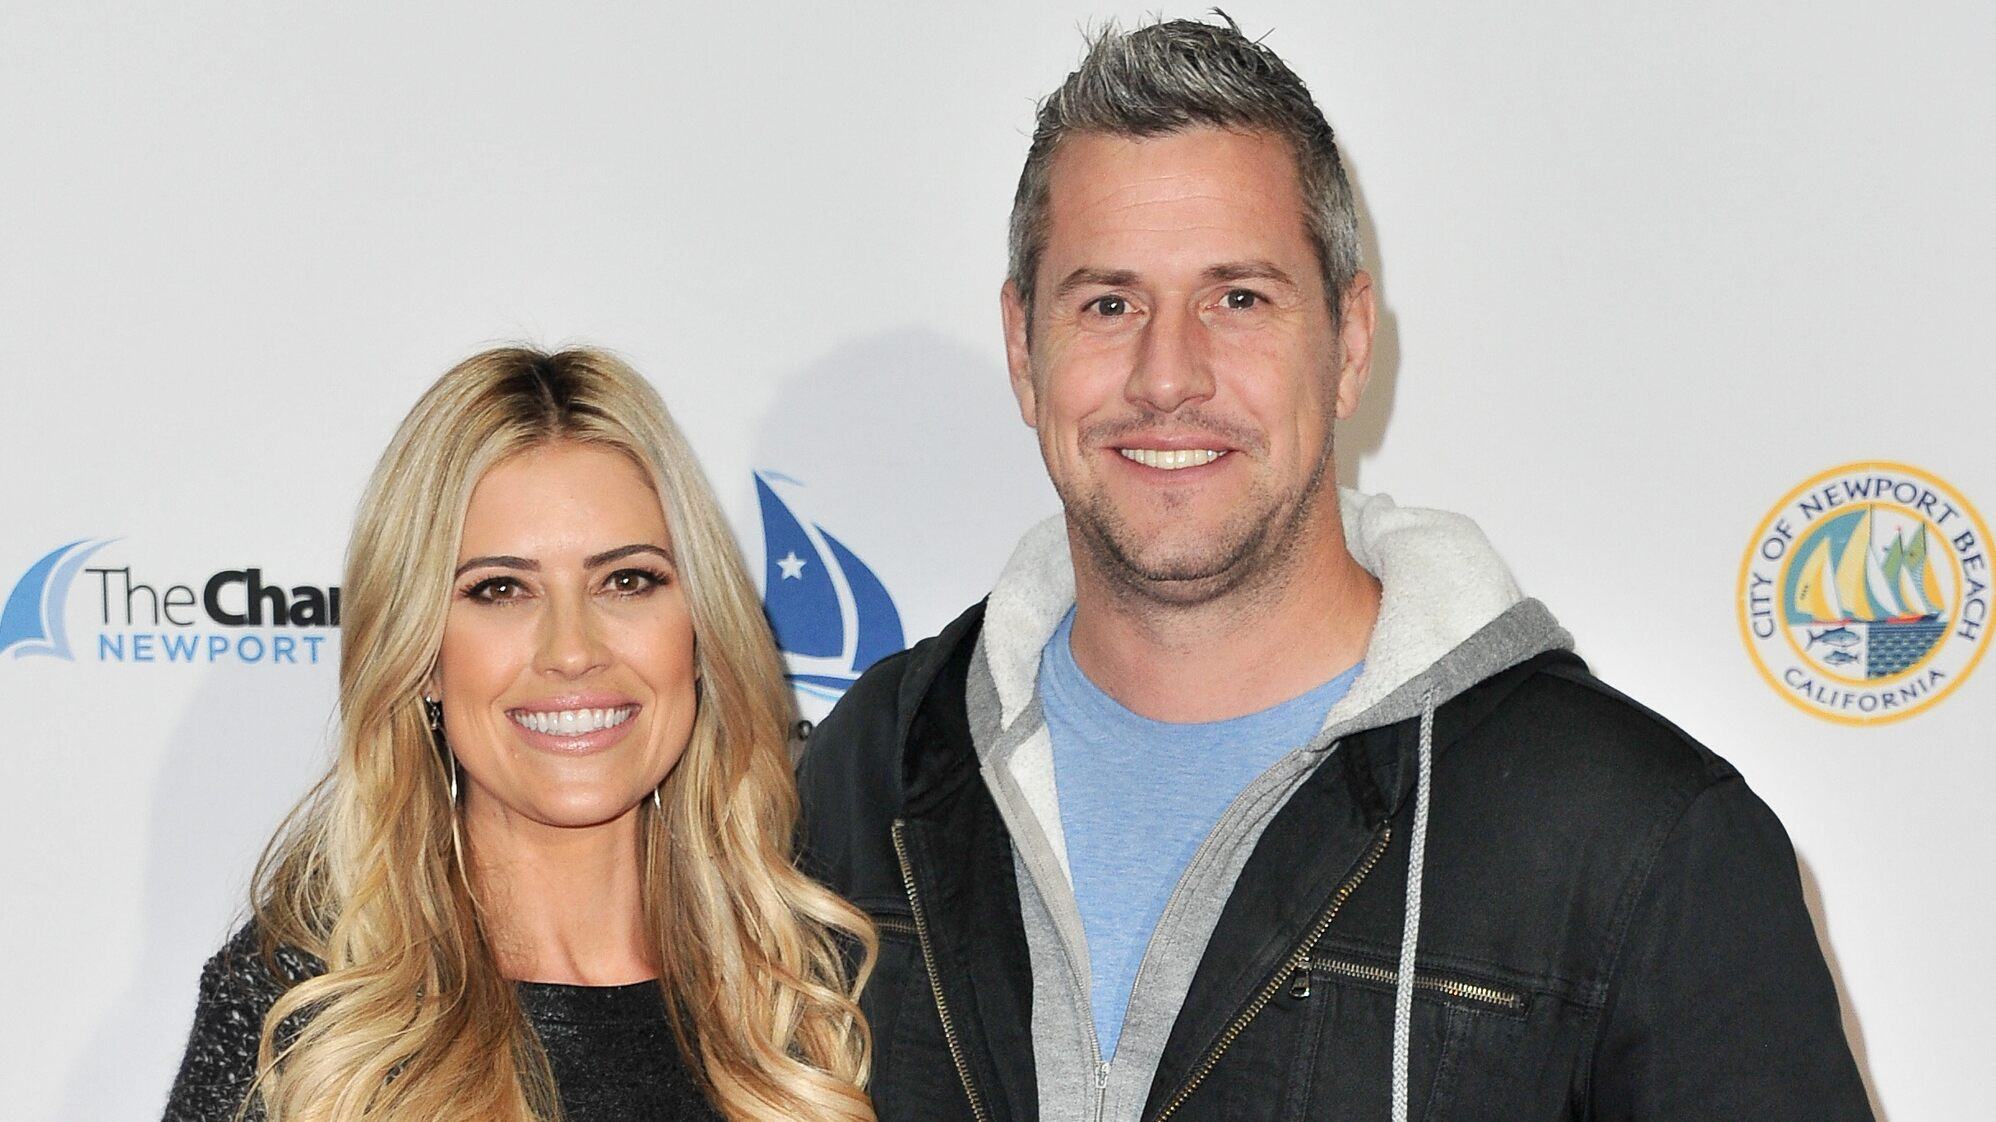 Ant Anstead says Christina Anstead split 'was not my decision': 'It really hit me hard'